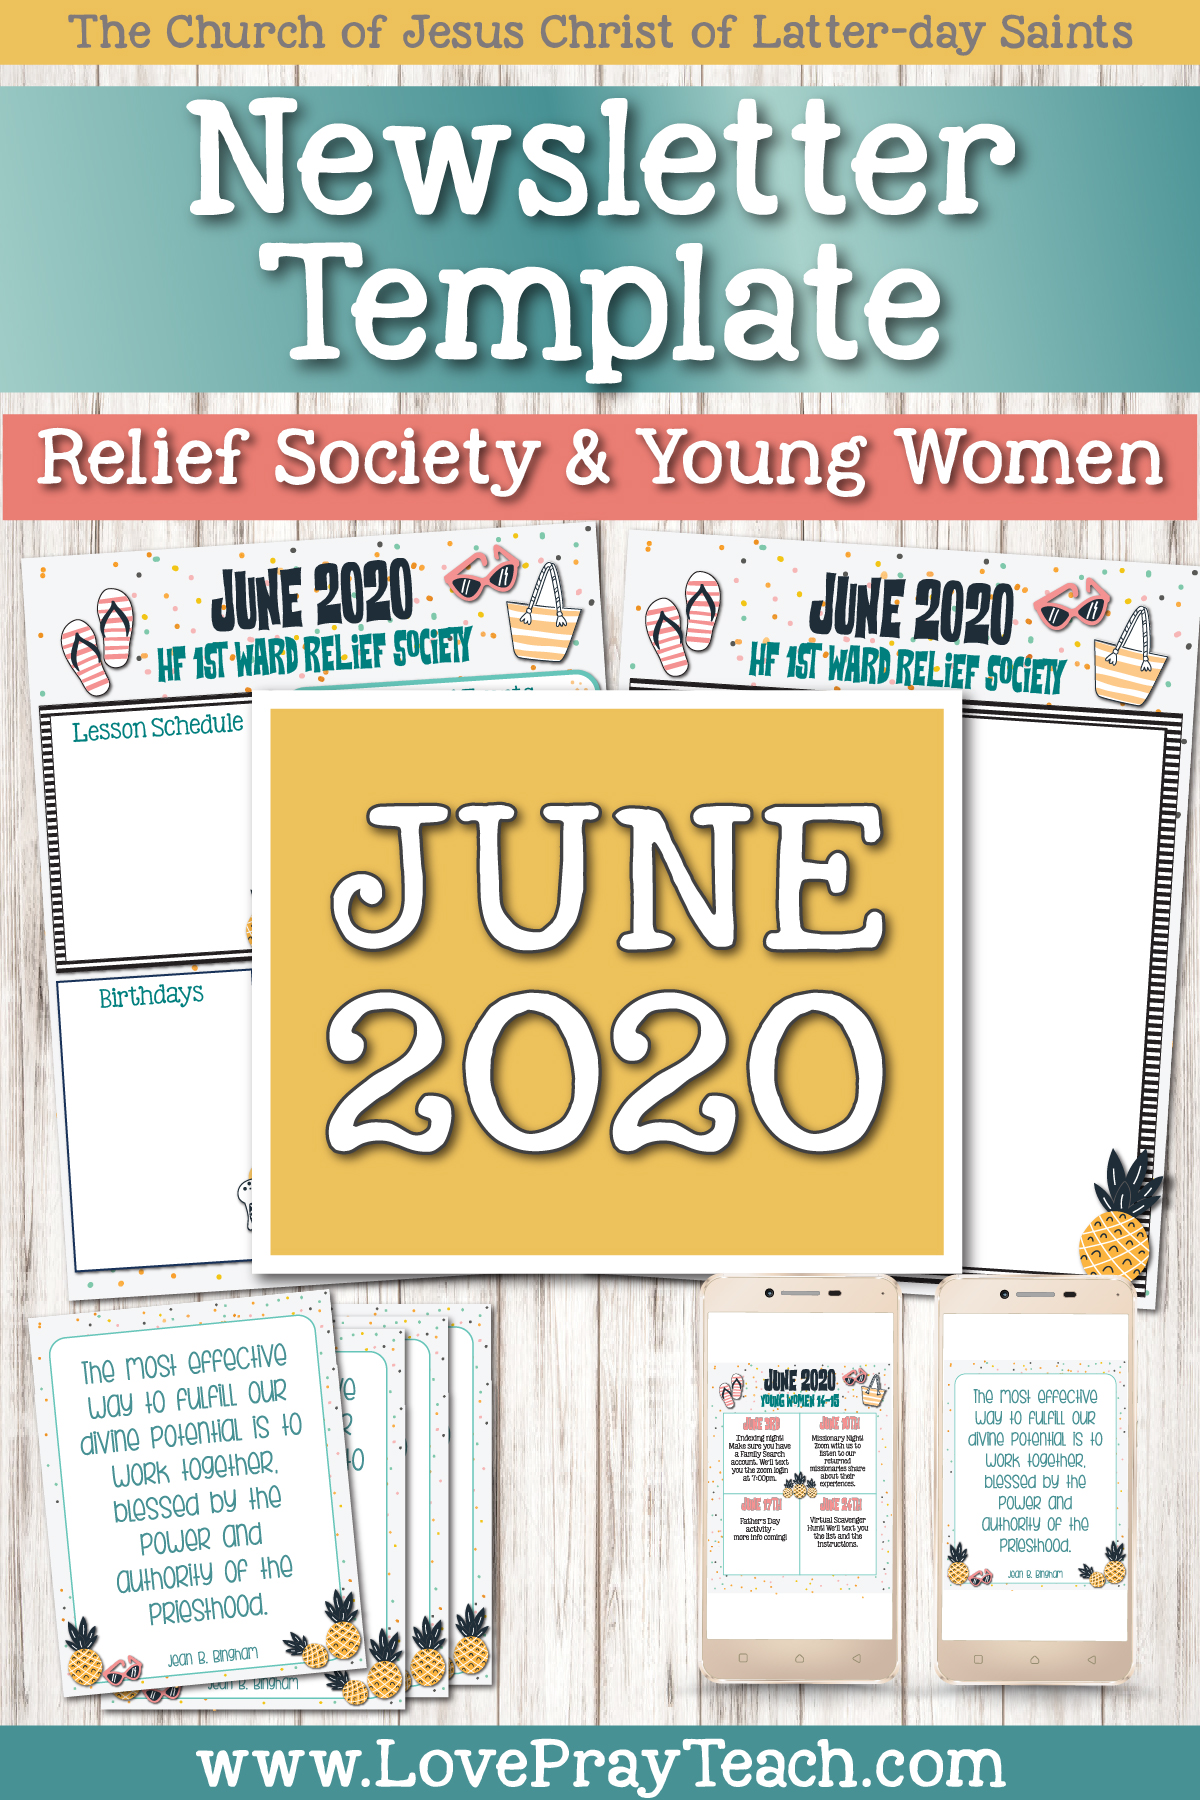 June 2020 Editable Newsletter Bundle for Relief Society or Young Women www.LovePrayTeach.com